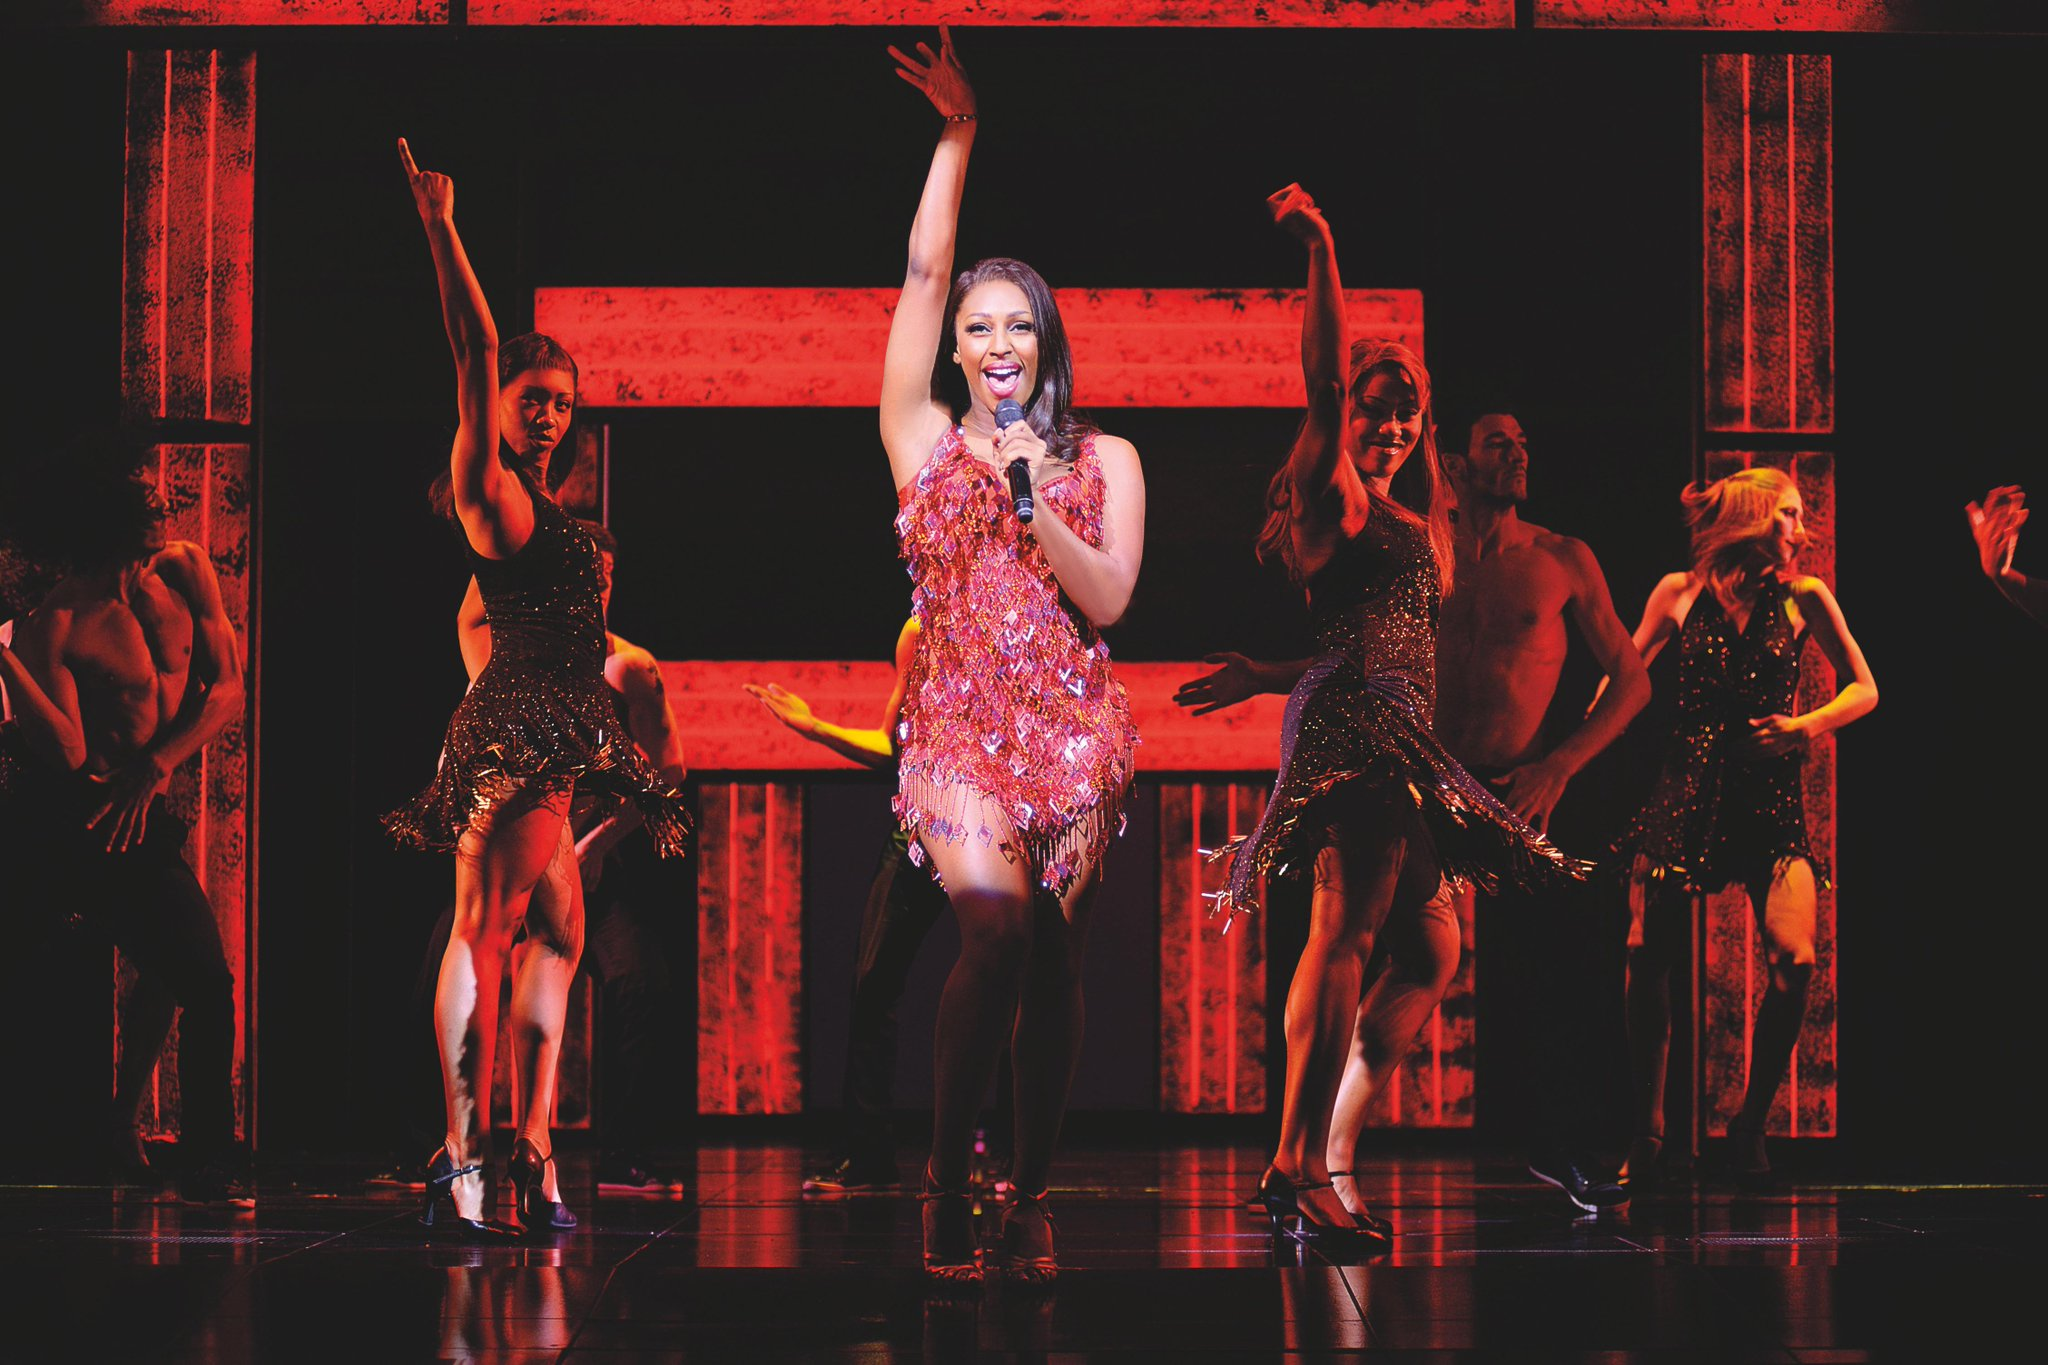 RT @WhatsOnWolves: 'I urge you to go see for yourself' 5 star review for @TheBodyguardUK at @wolvesgrand here http://t.co/basAA6JgSk http:/…